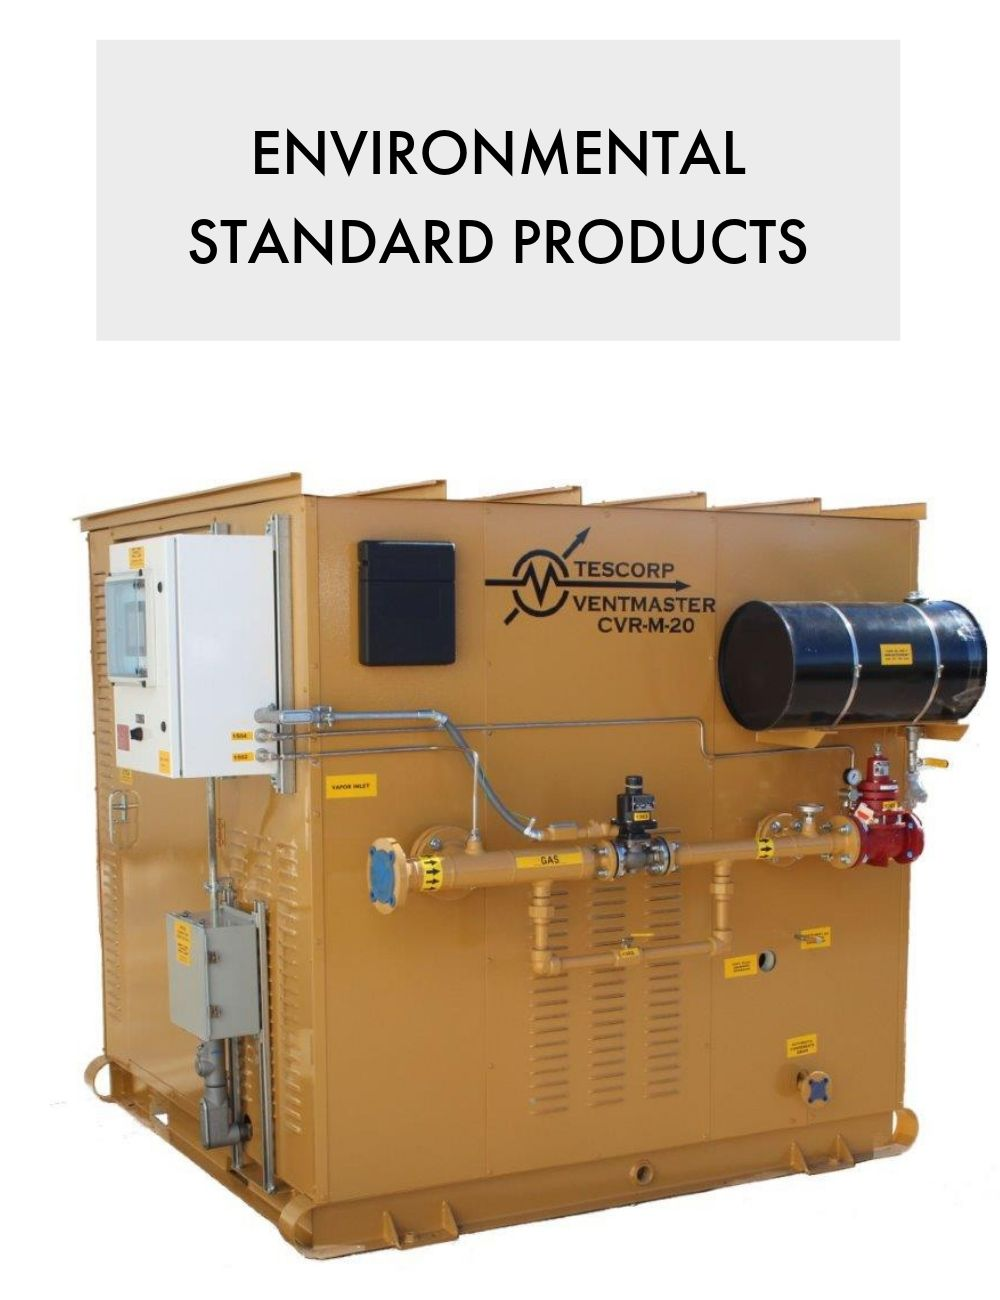 TESCORP Standard Environmental Products promo image